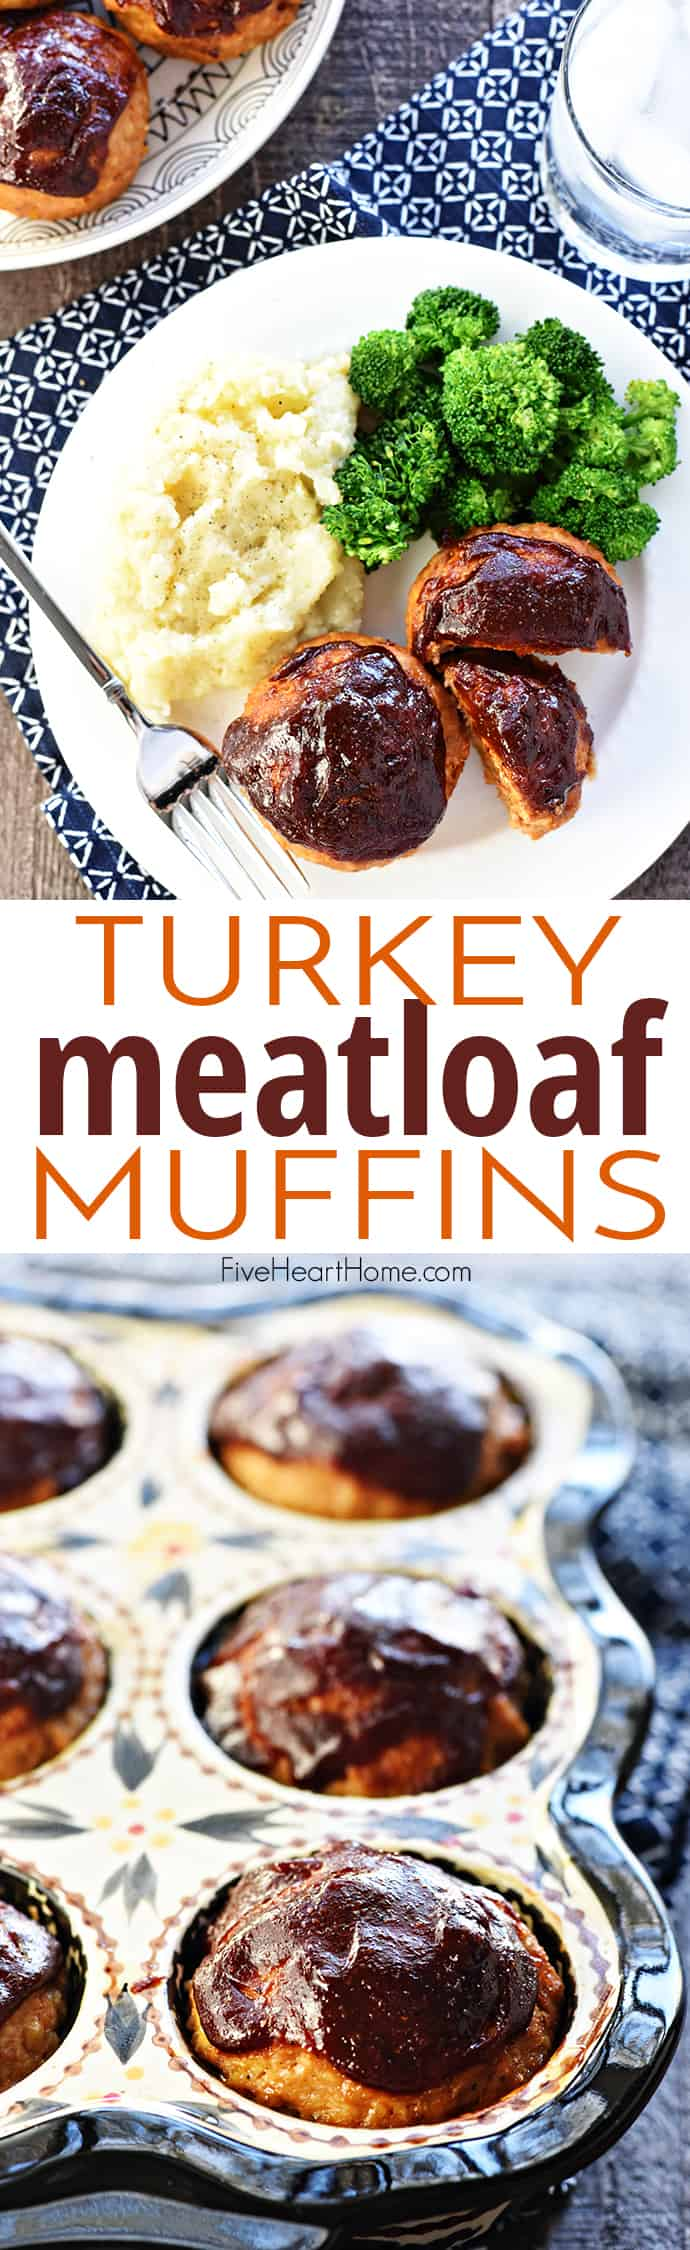 Turkey Meatloaf Muffins ~ this juicy, flavorful, quick to make recipe is also egg-free and gluten-free, with a tender texture and a yummy barbecue sauce glaze for an easy, family-pleasing dinner! | FiveHeartHome.com via @fivehearthome